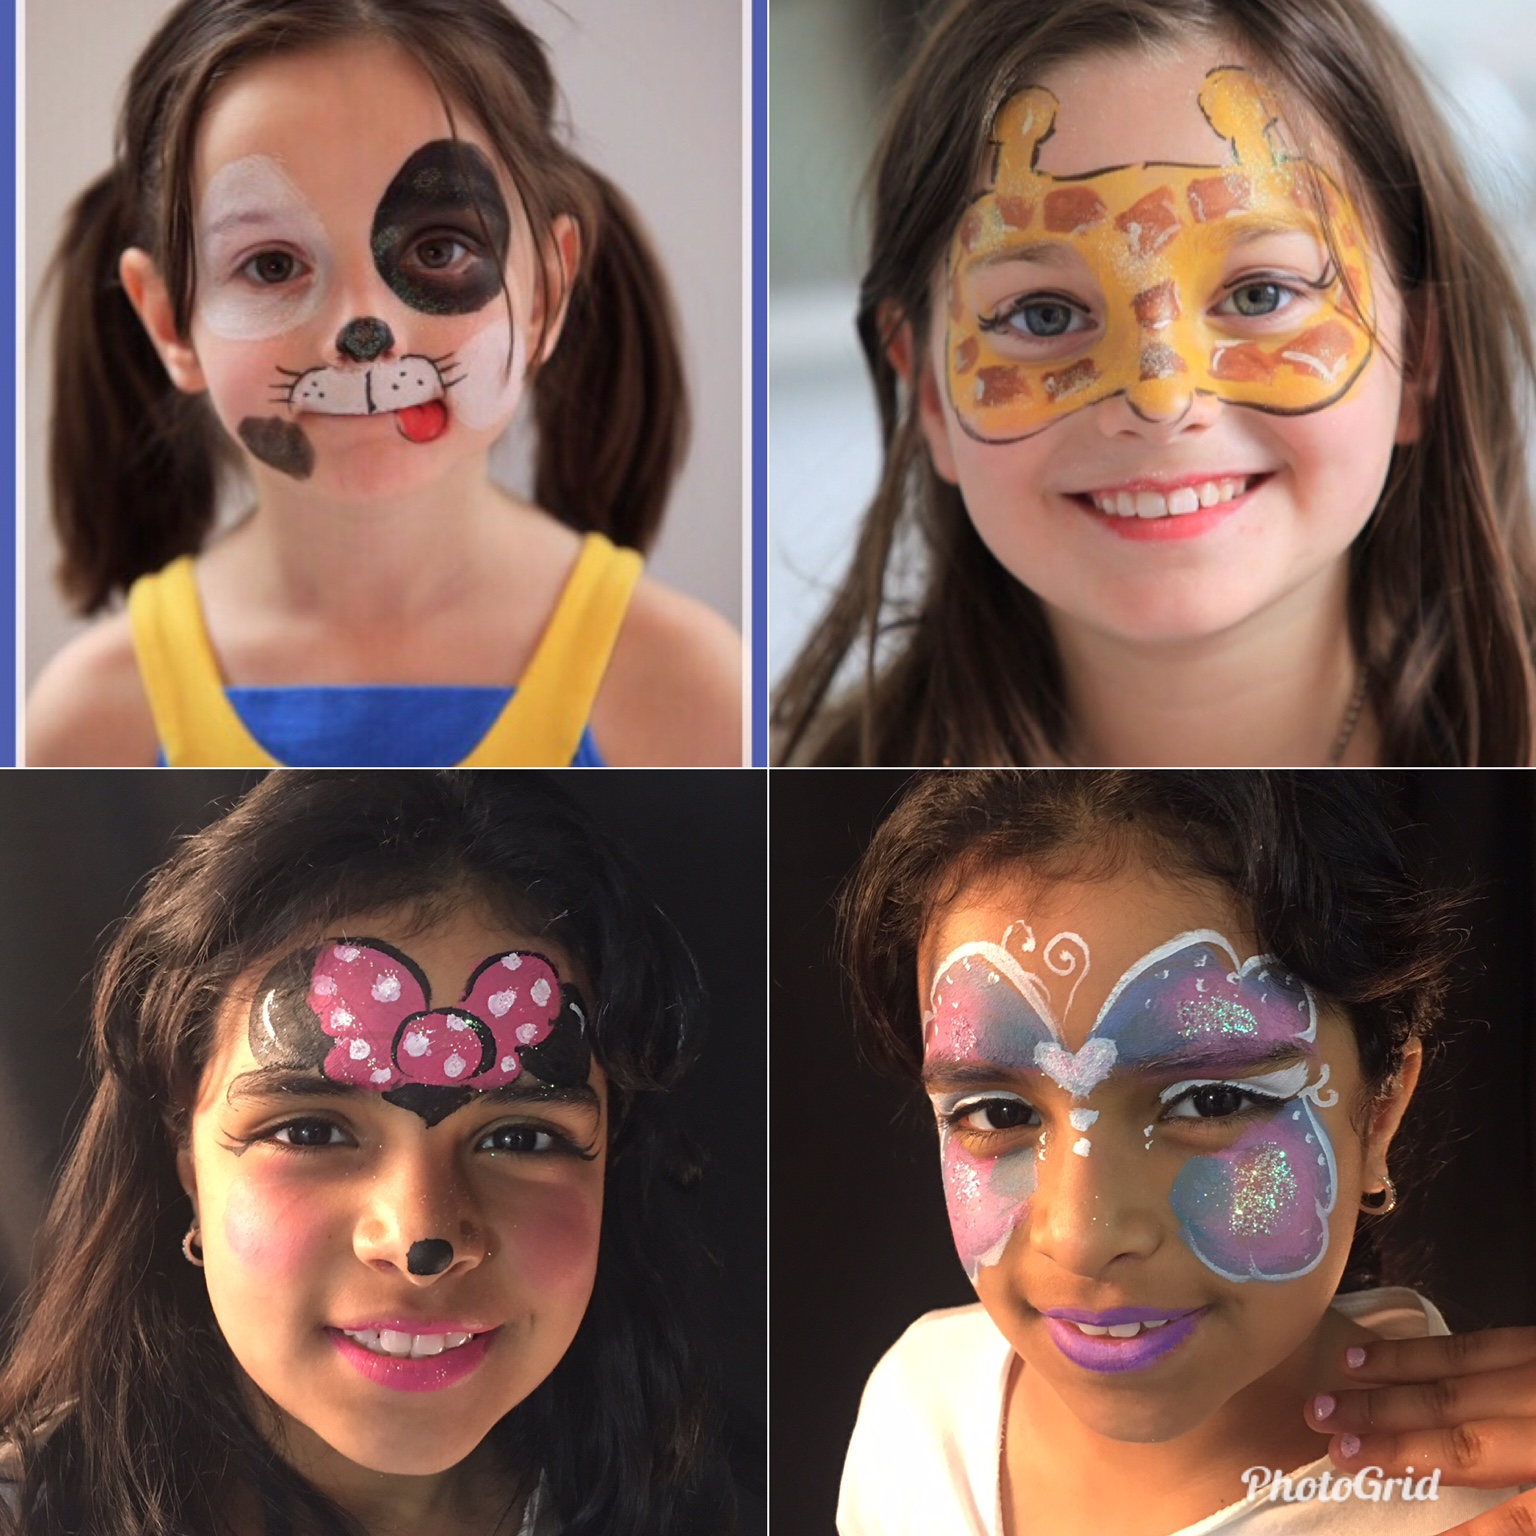 Kids Party Entertainment Packages Face Painter and Balloon Artist NYC Princess Character Clown Elsa Anna Little Mermaid Ariel Moana professional face painting NYC disney character